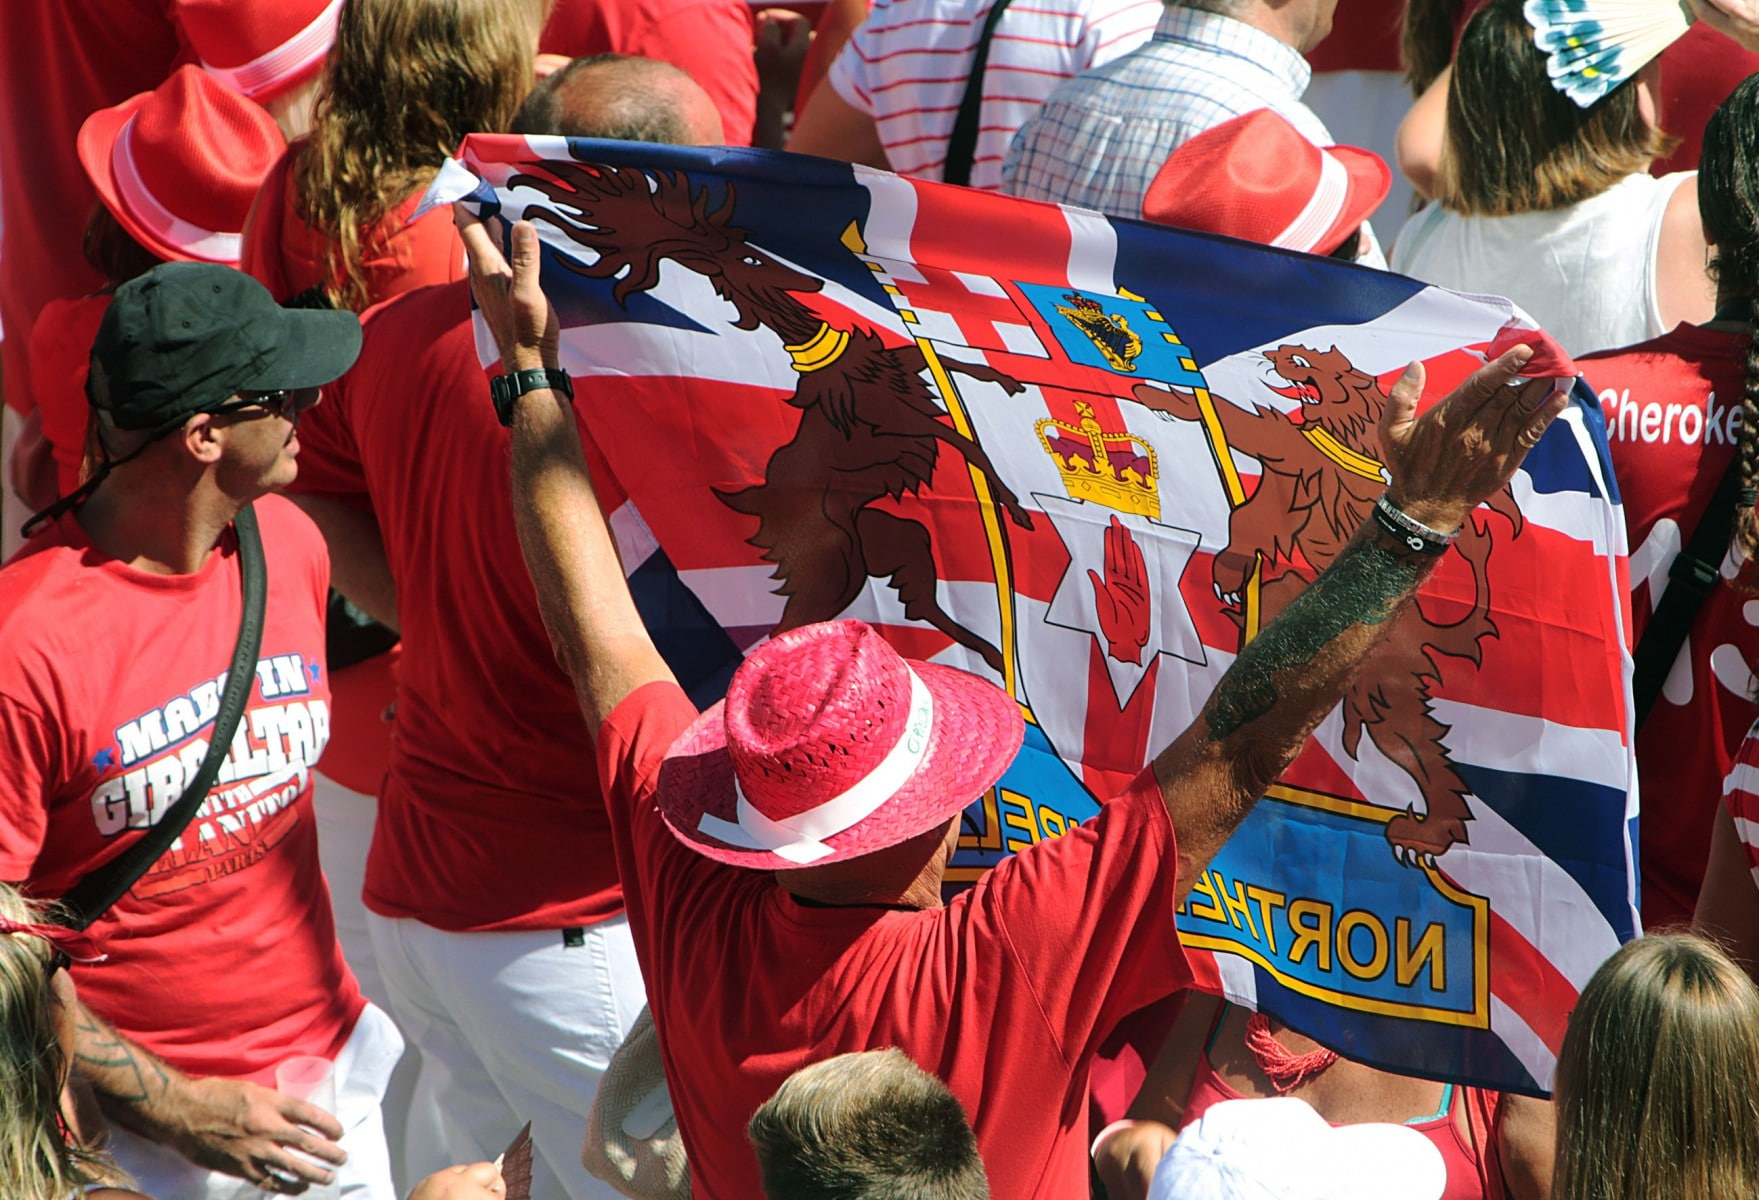 160910-national-day-gibraltar-2016-18_28981312993_o